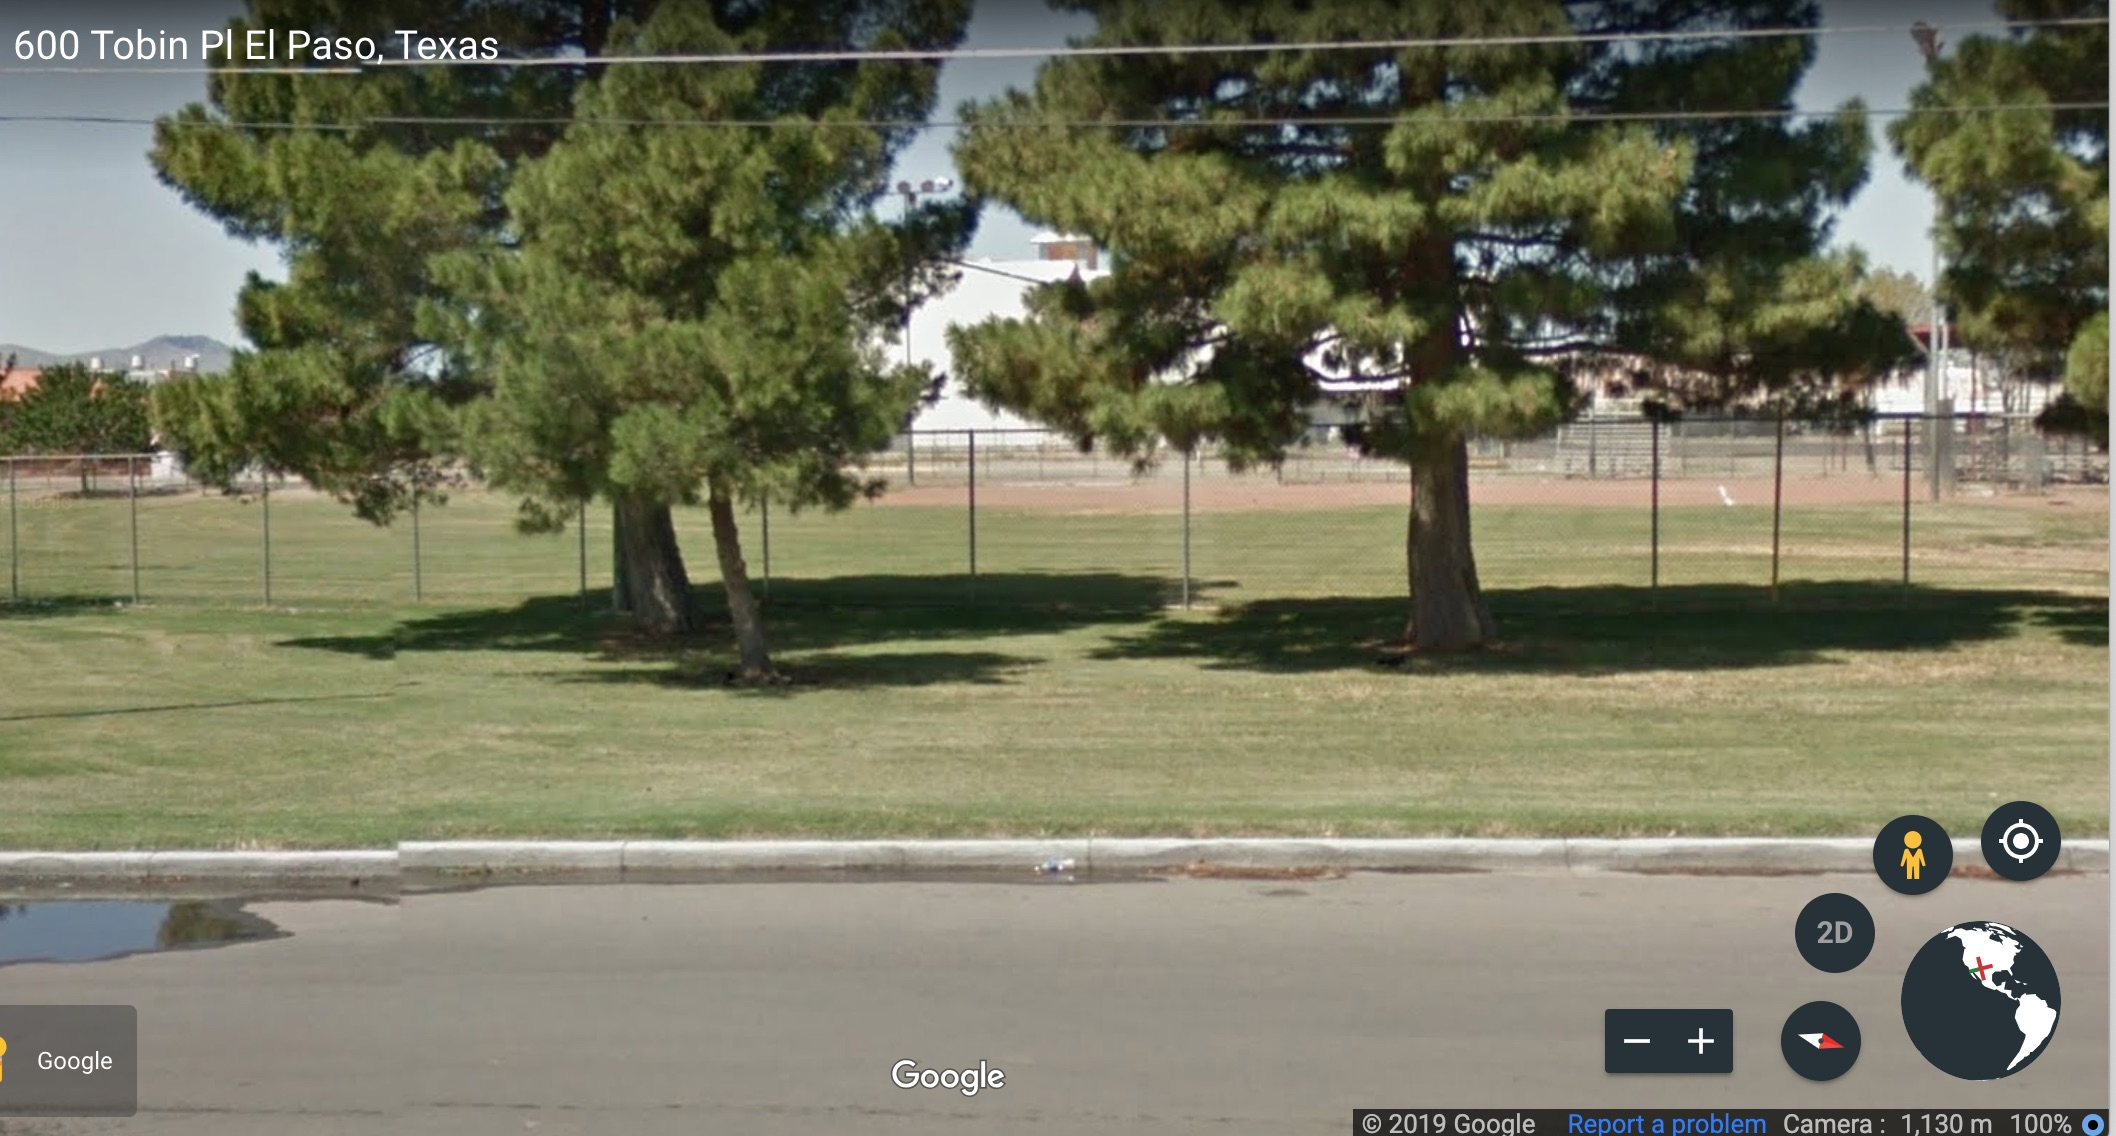 Fencing around the Chili Acosta Park, El Paso, Texas. Screen Shot/Google Earth